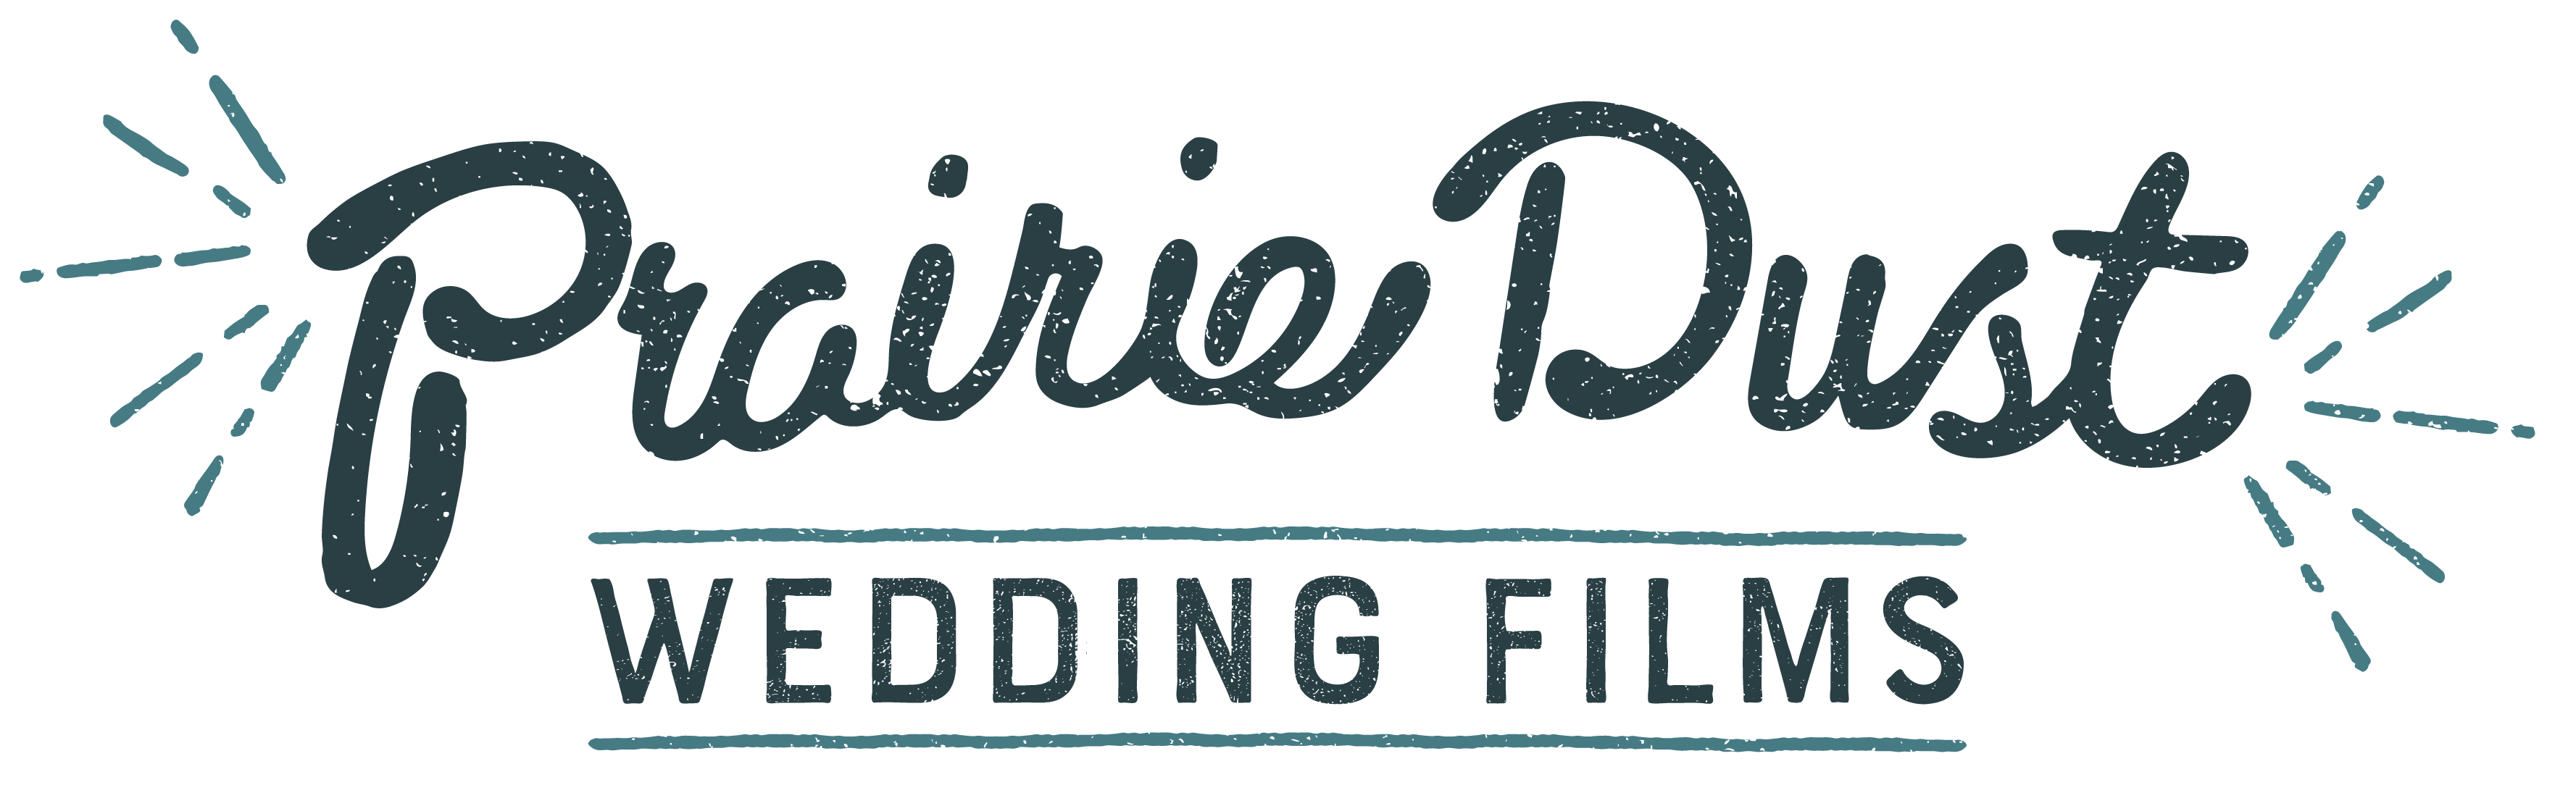 Prairie Dust Wedding Films